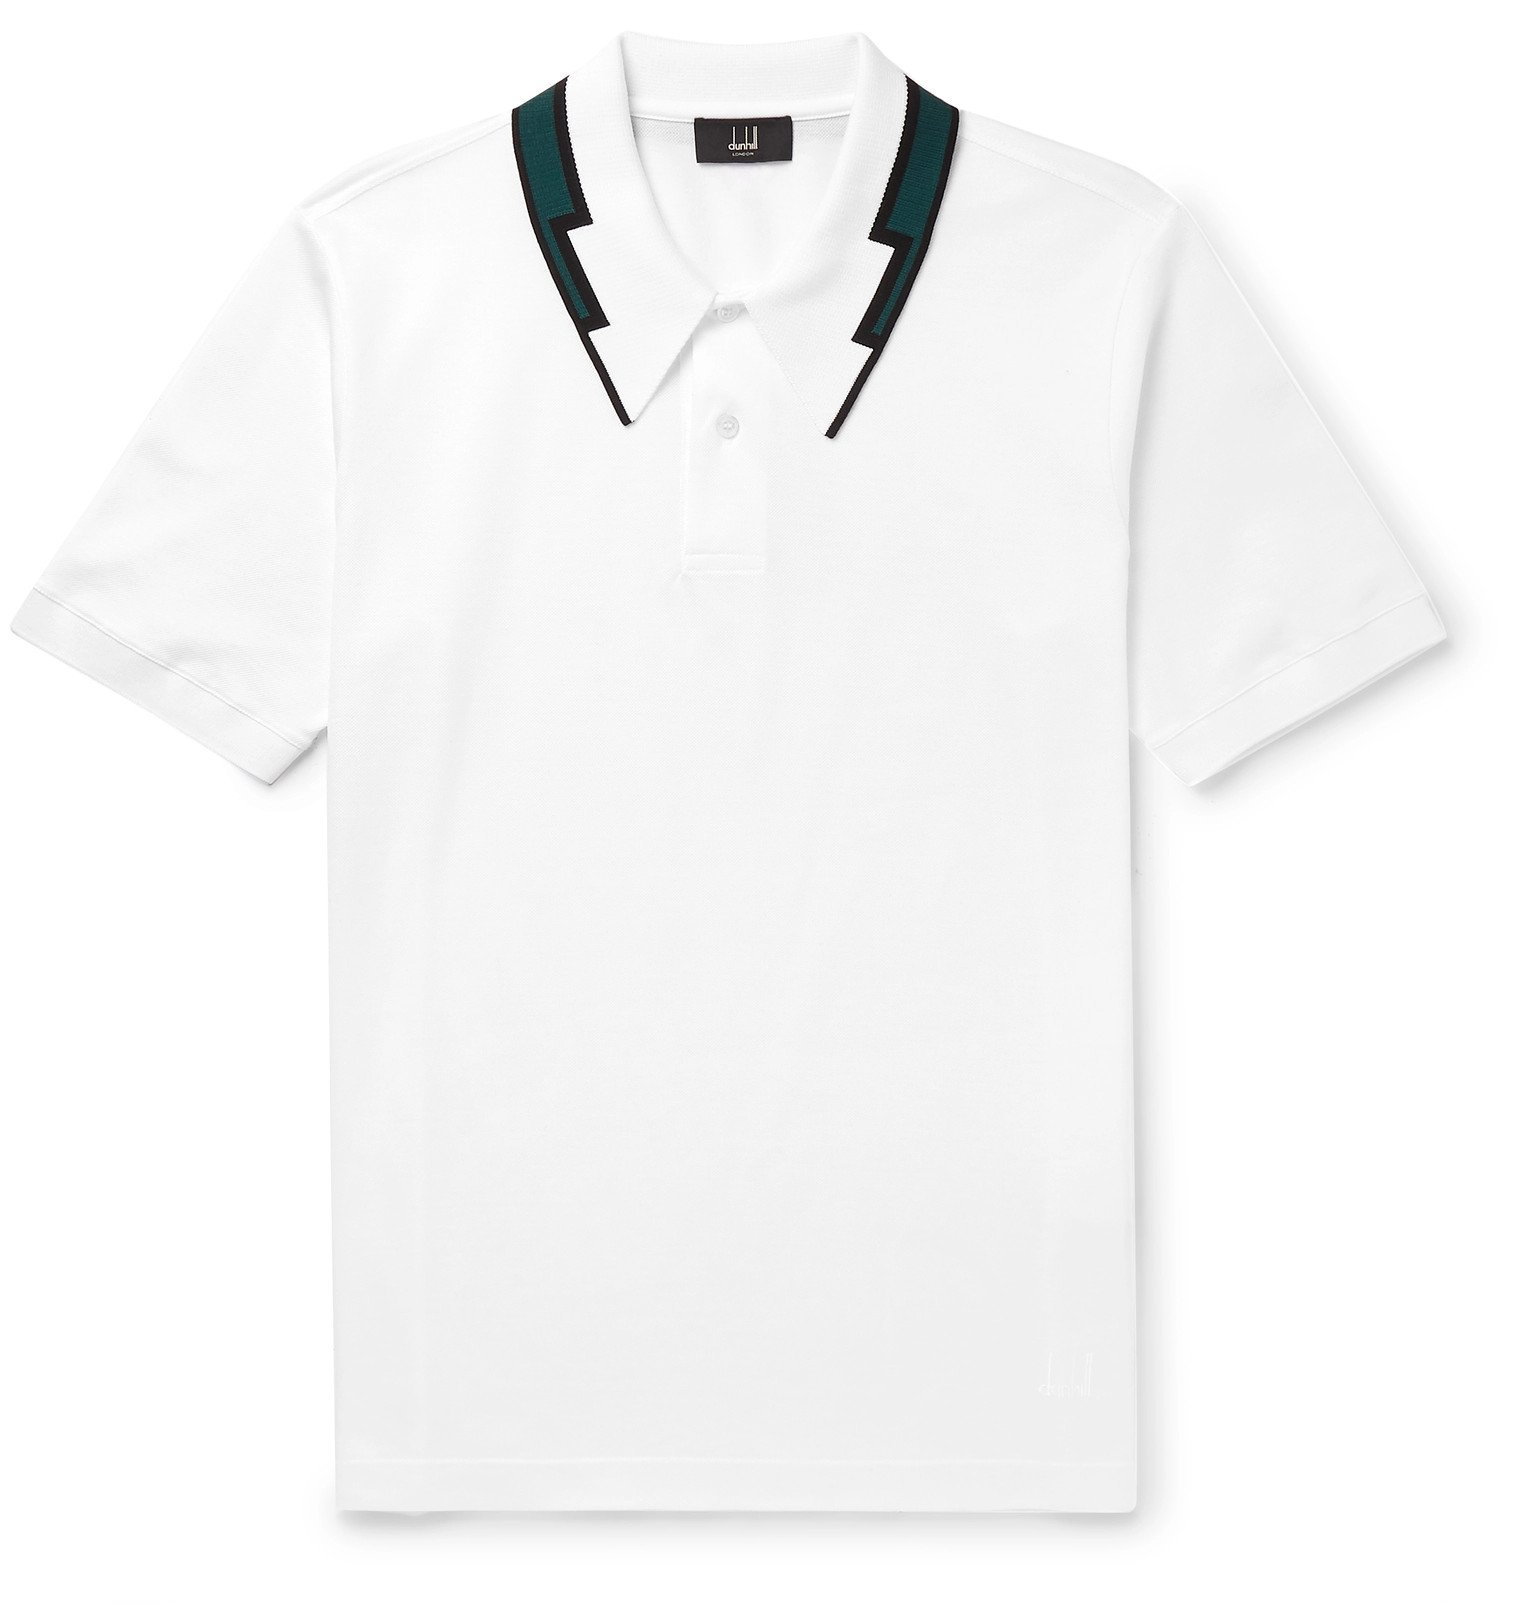 Dunhill - Slim-Fit Contrast-Tipped Cotton-Piqué Polo Shirt - White